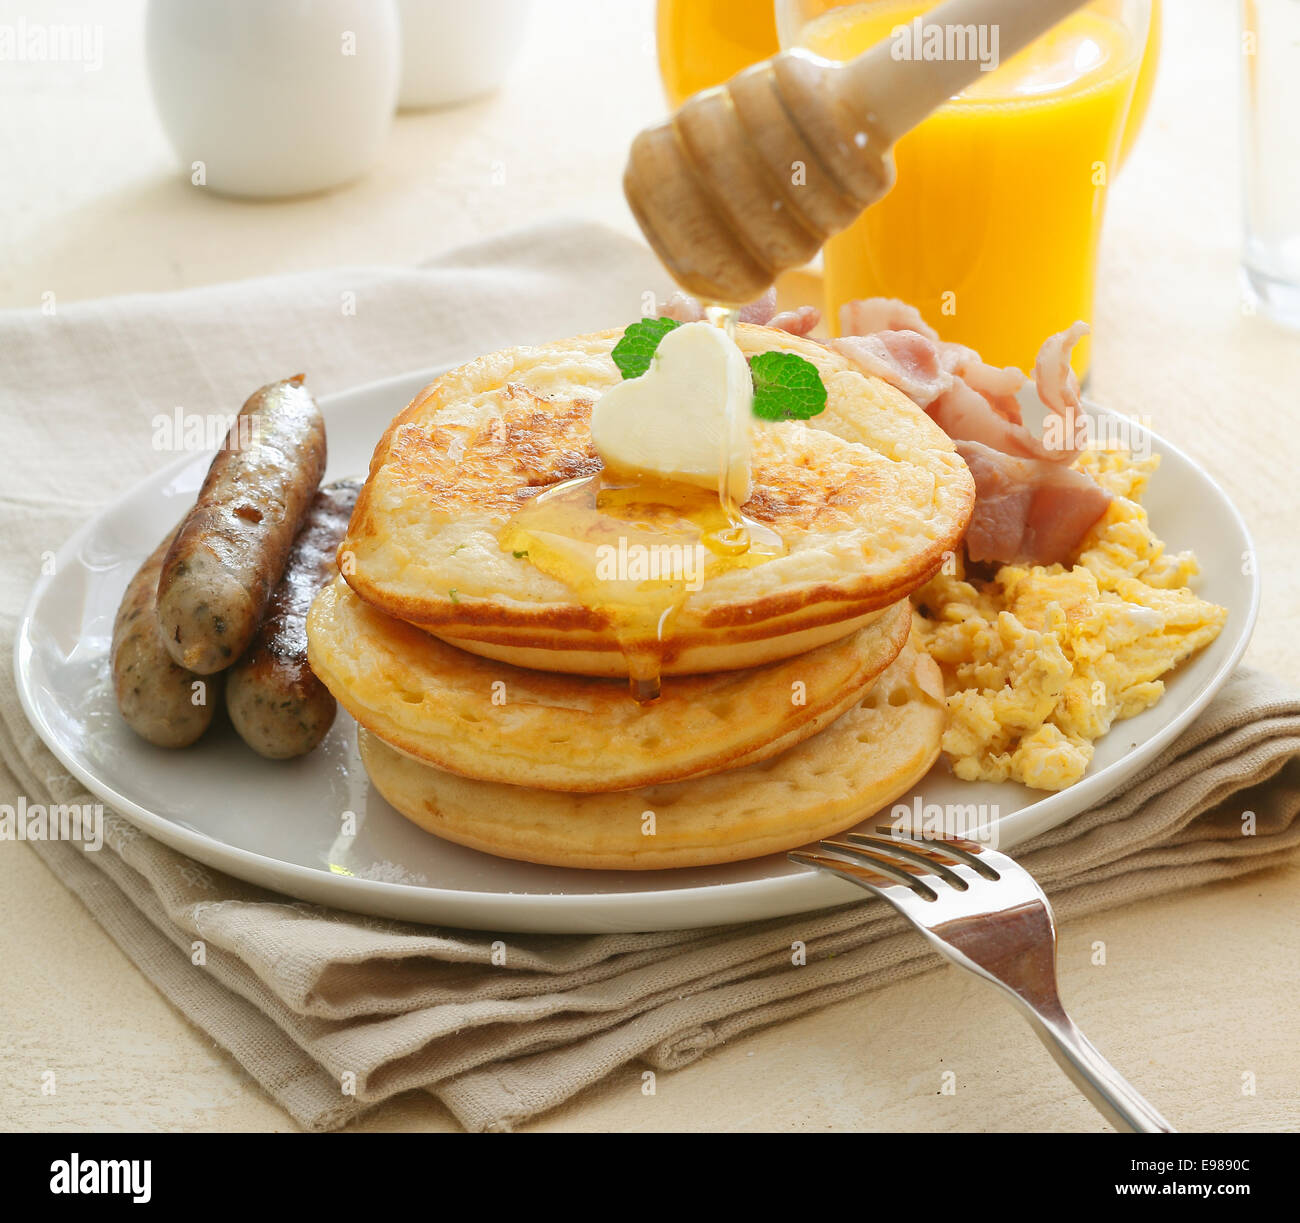 Large hearty cooked breakfast with sausages, eggs, bacon and a stack of golden pancakes topped with a drizzling - Stock Image